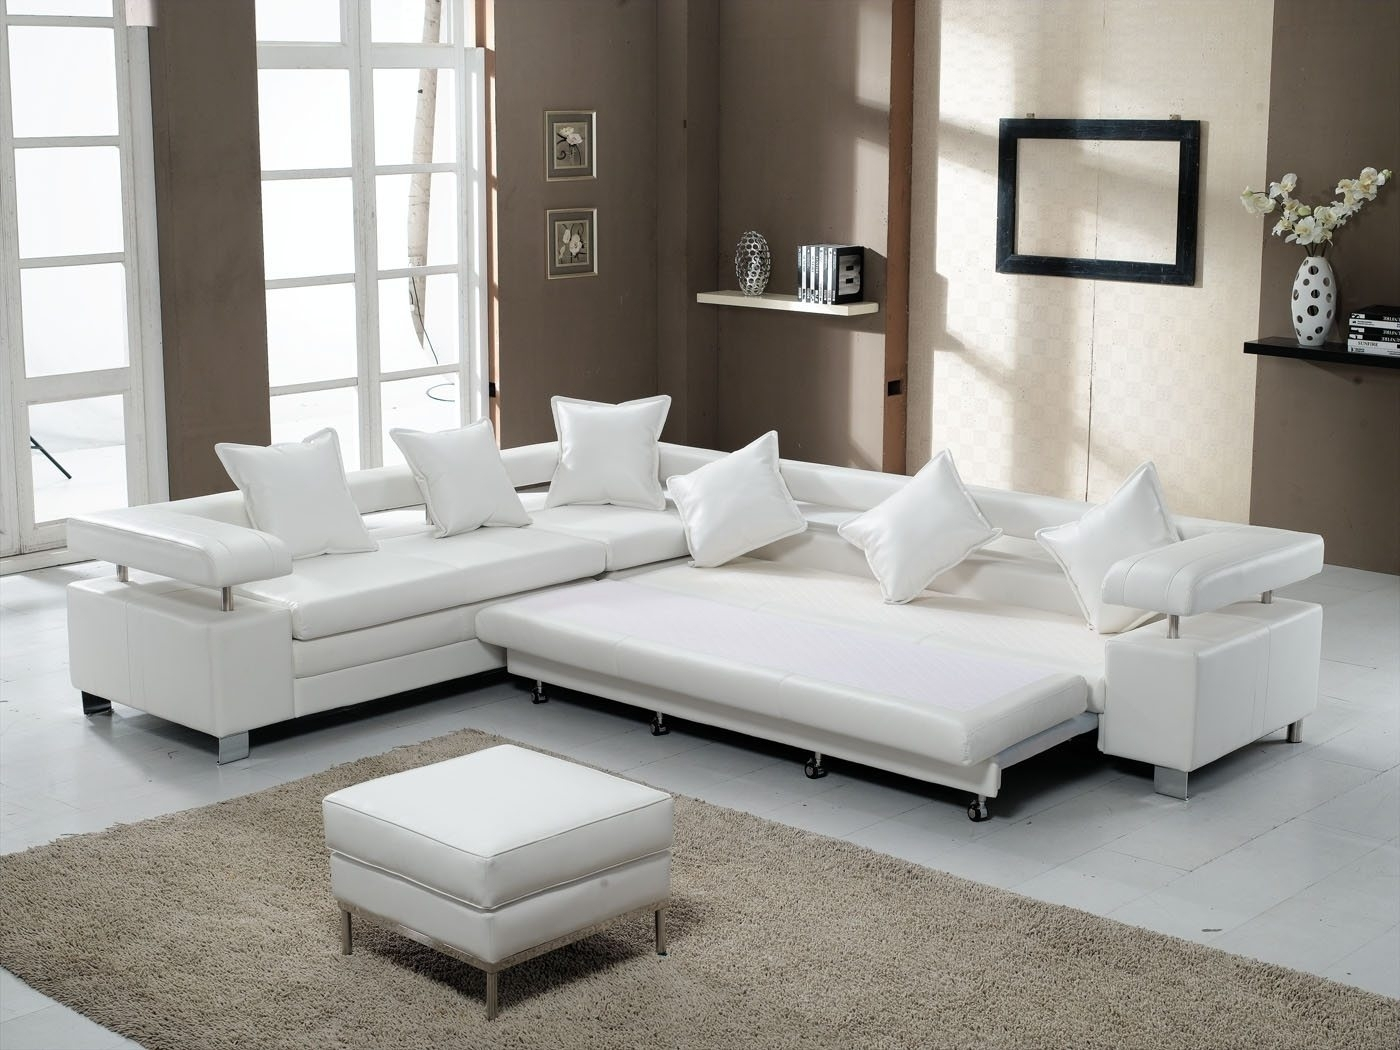 Sectional Sofa : Buy Sectional Couch Fabric Sofas Tan Sectional in Modern Microfiber Sectional Sofas (Image 8 of 10)